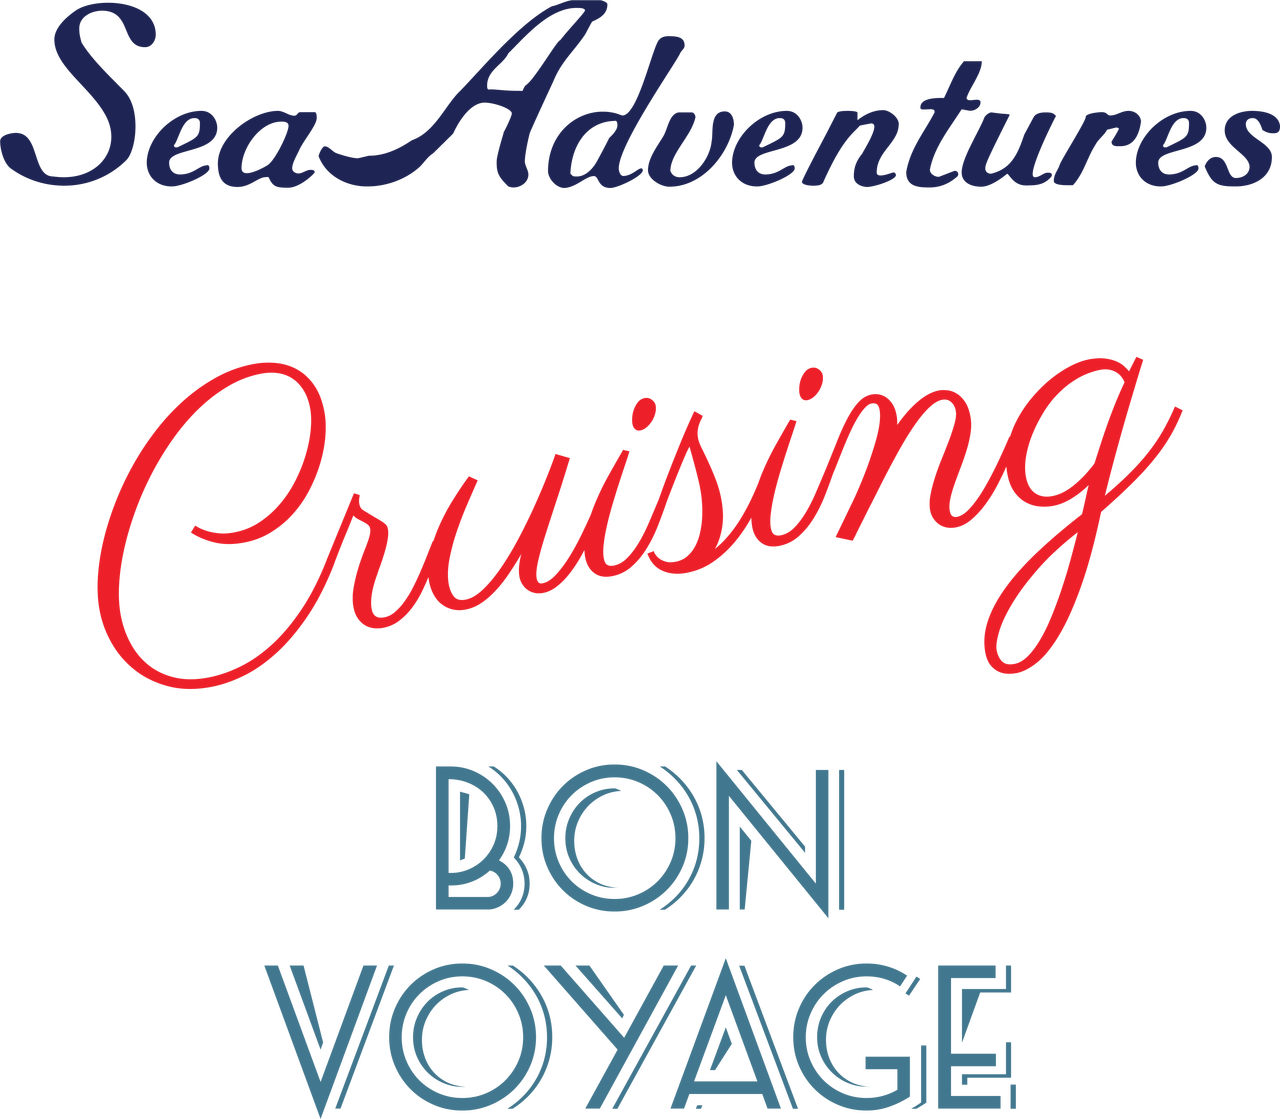 Cruise Words SVG Cut File